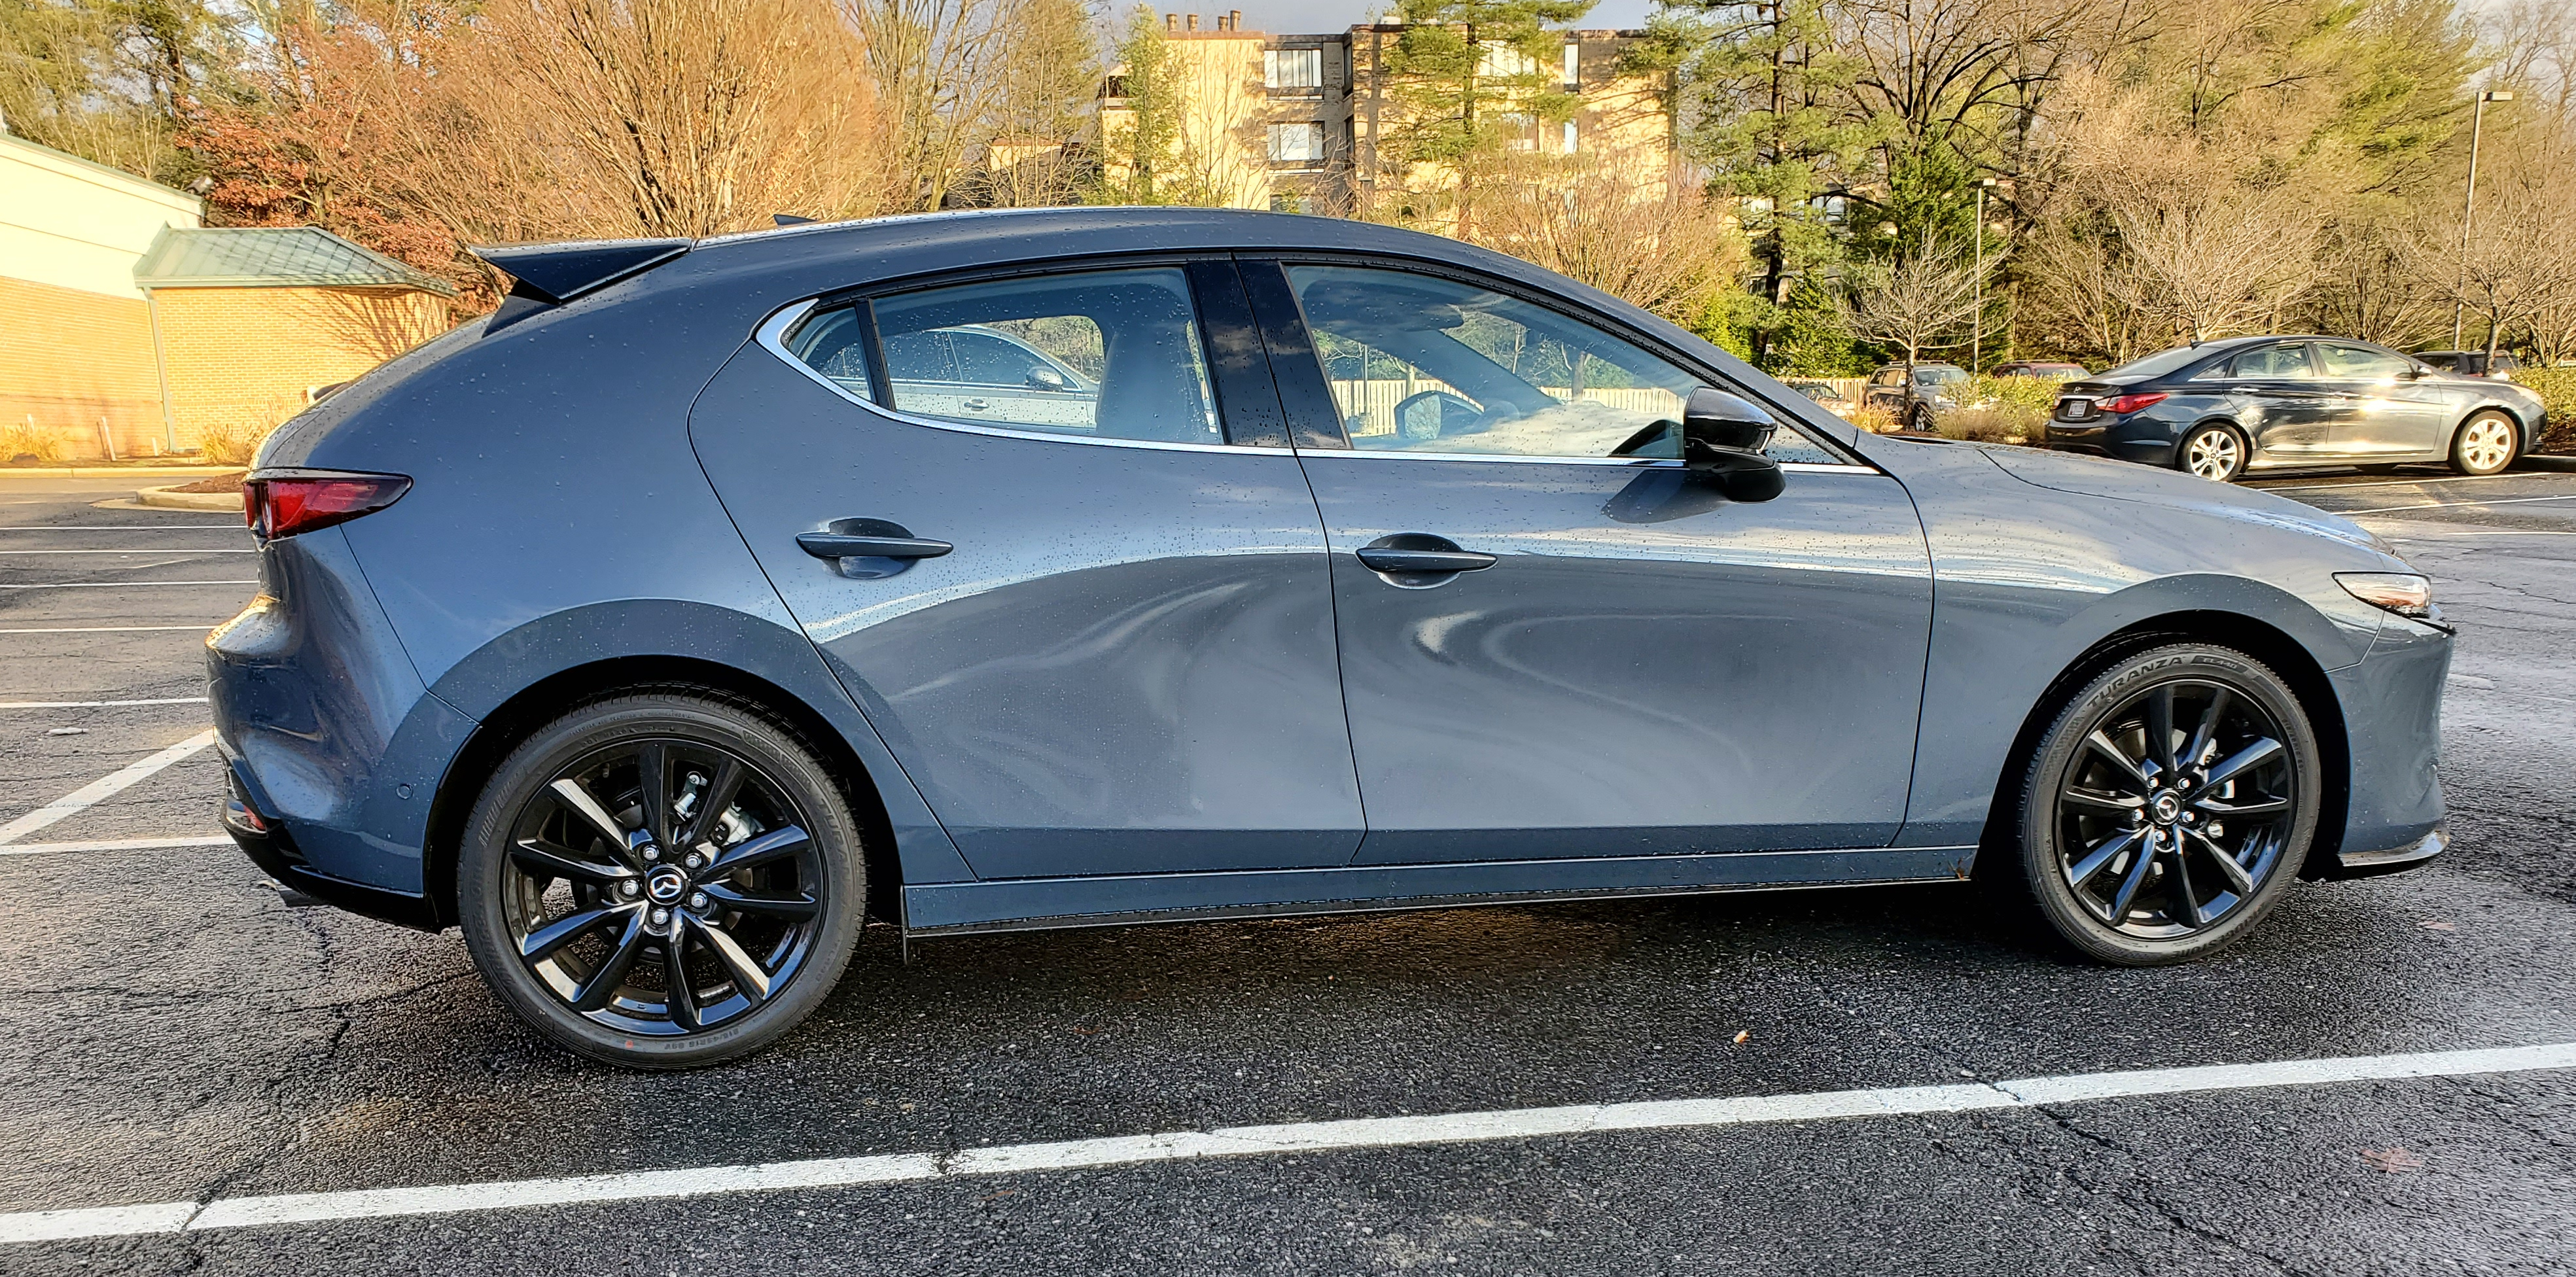 The Mazda3 hatch has an athletic design that rises from the grill to the spoiler and then drops down.